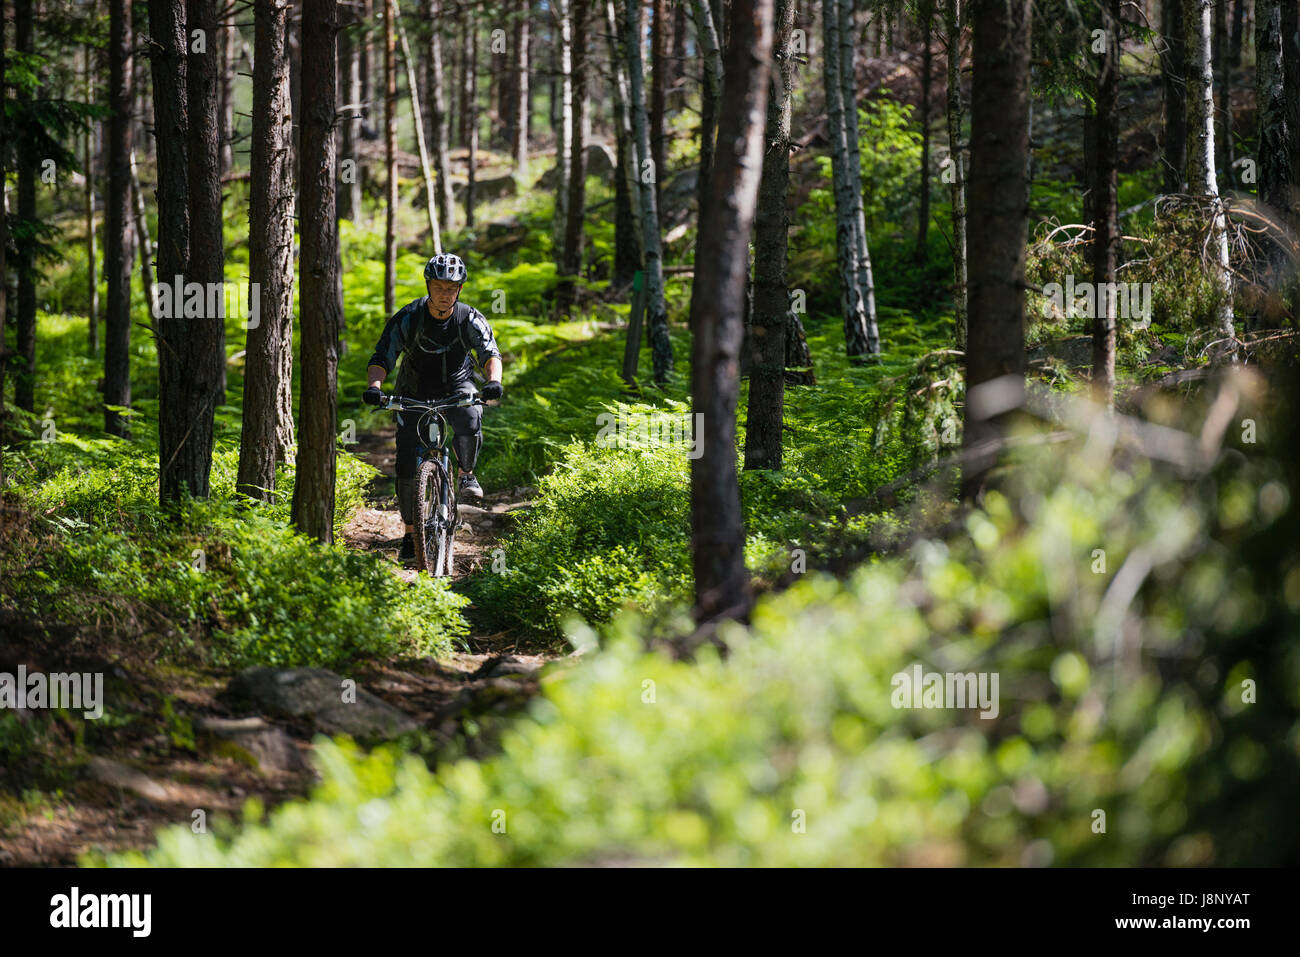 Man riding bicycle in forest Stock Photo